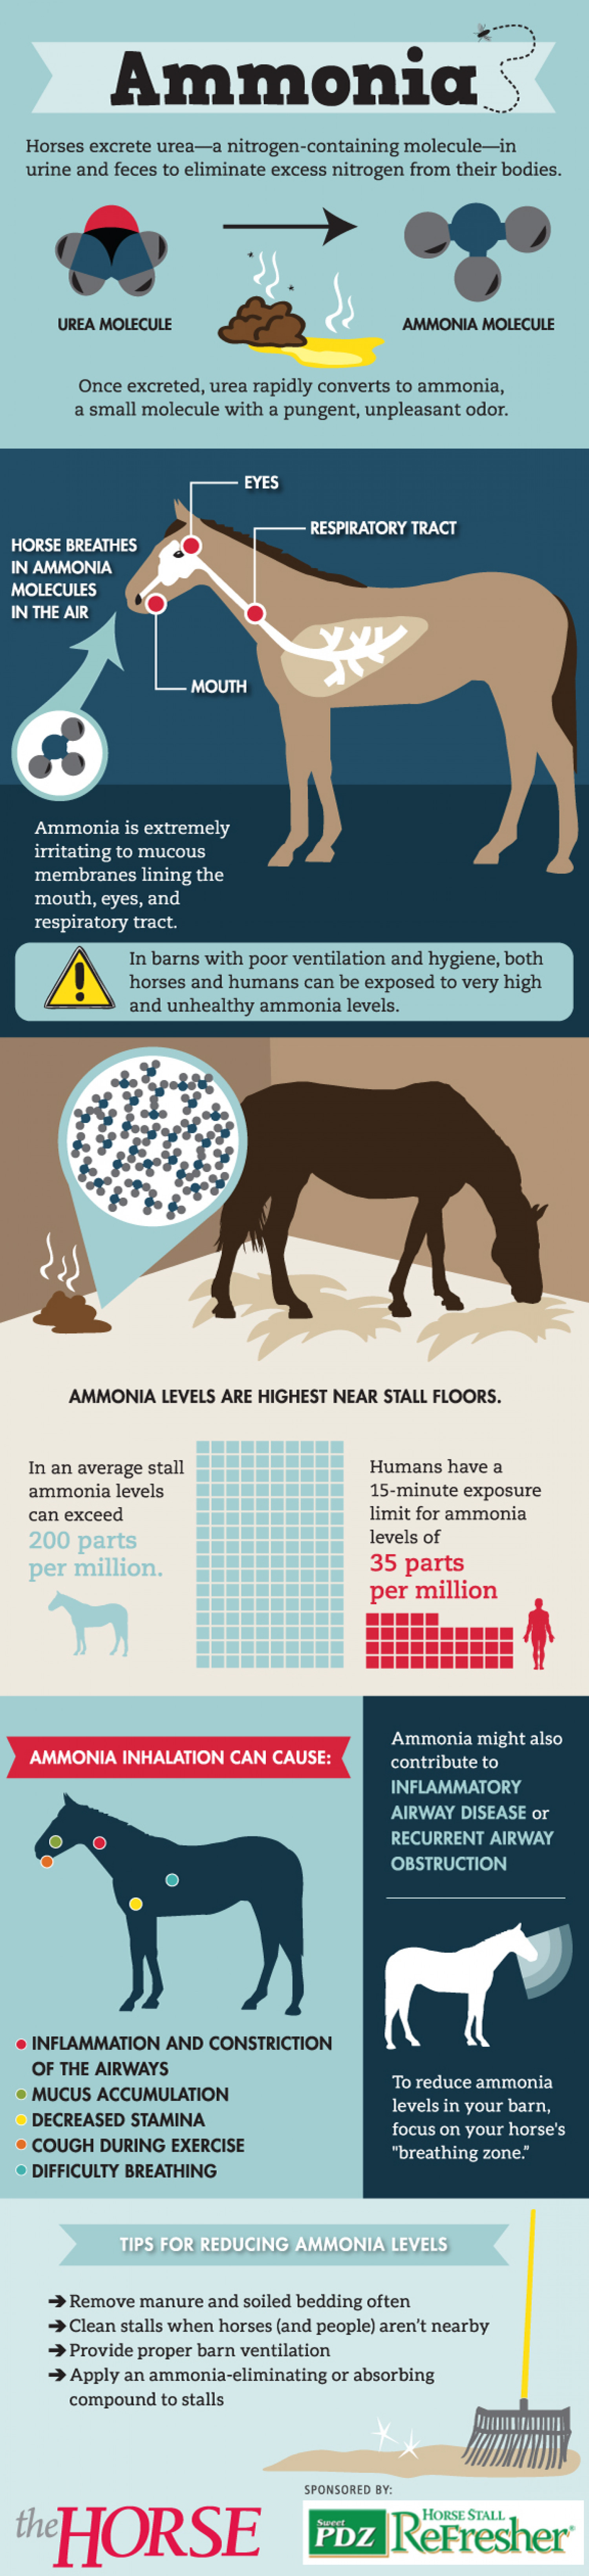 How Ammonia Impacts Your Horse Infographic